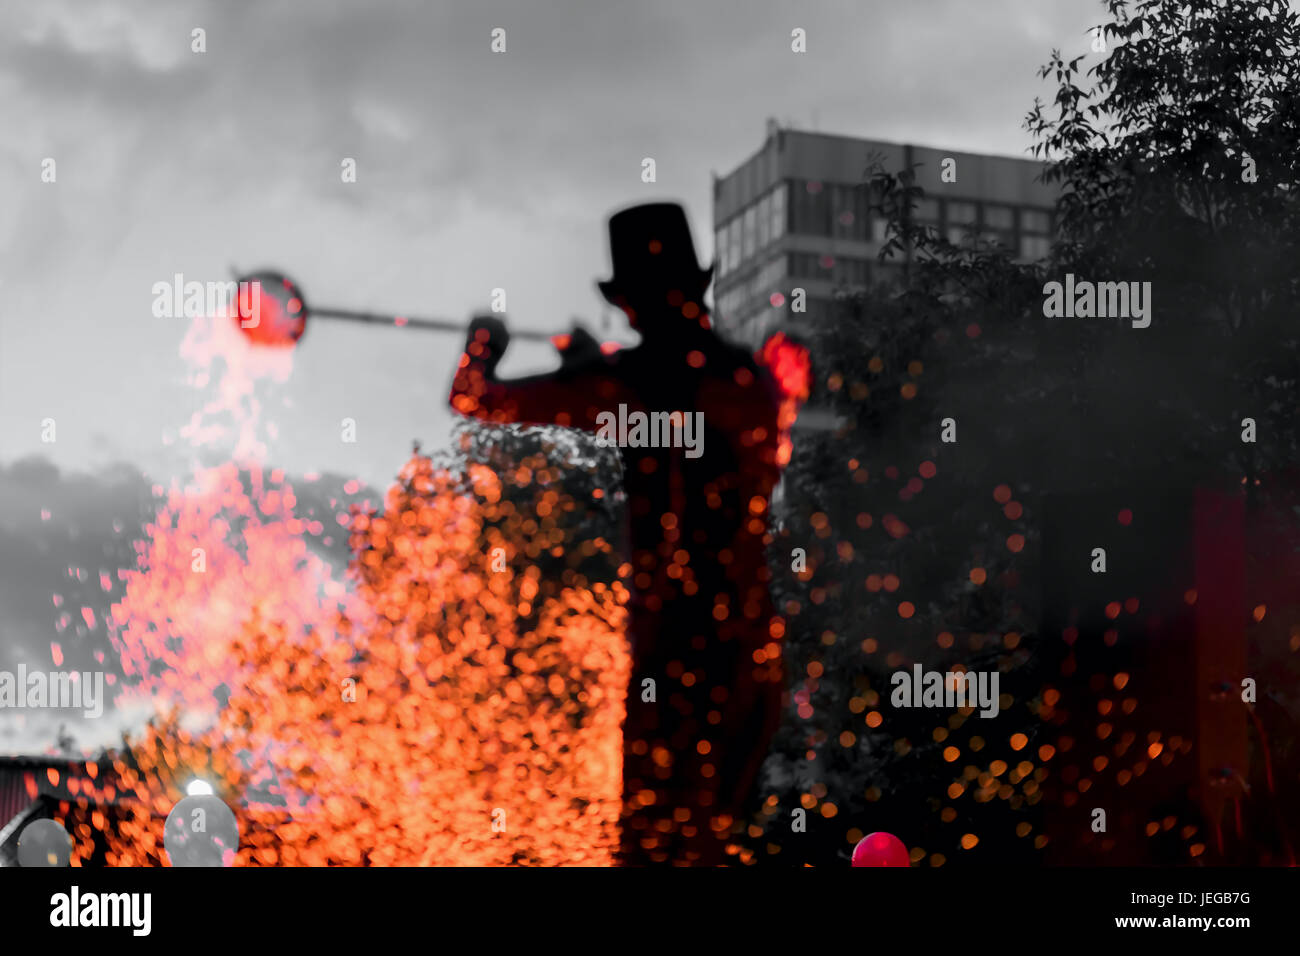 Amazing Fire Show at night. Silhouette of master fakir with fire works. Dance of fire performance, magic concept - Stock Image